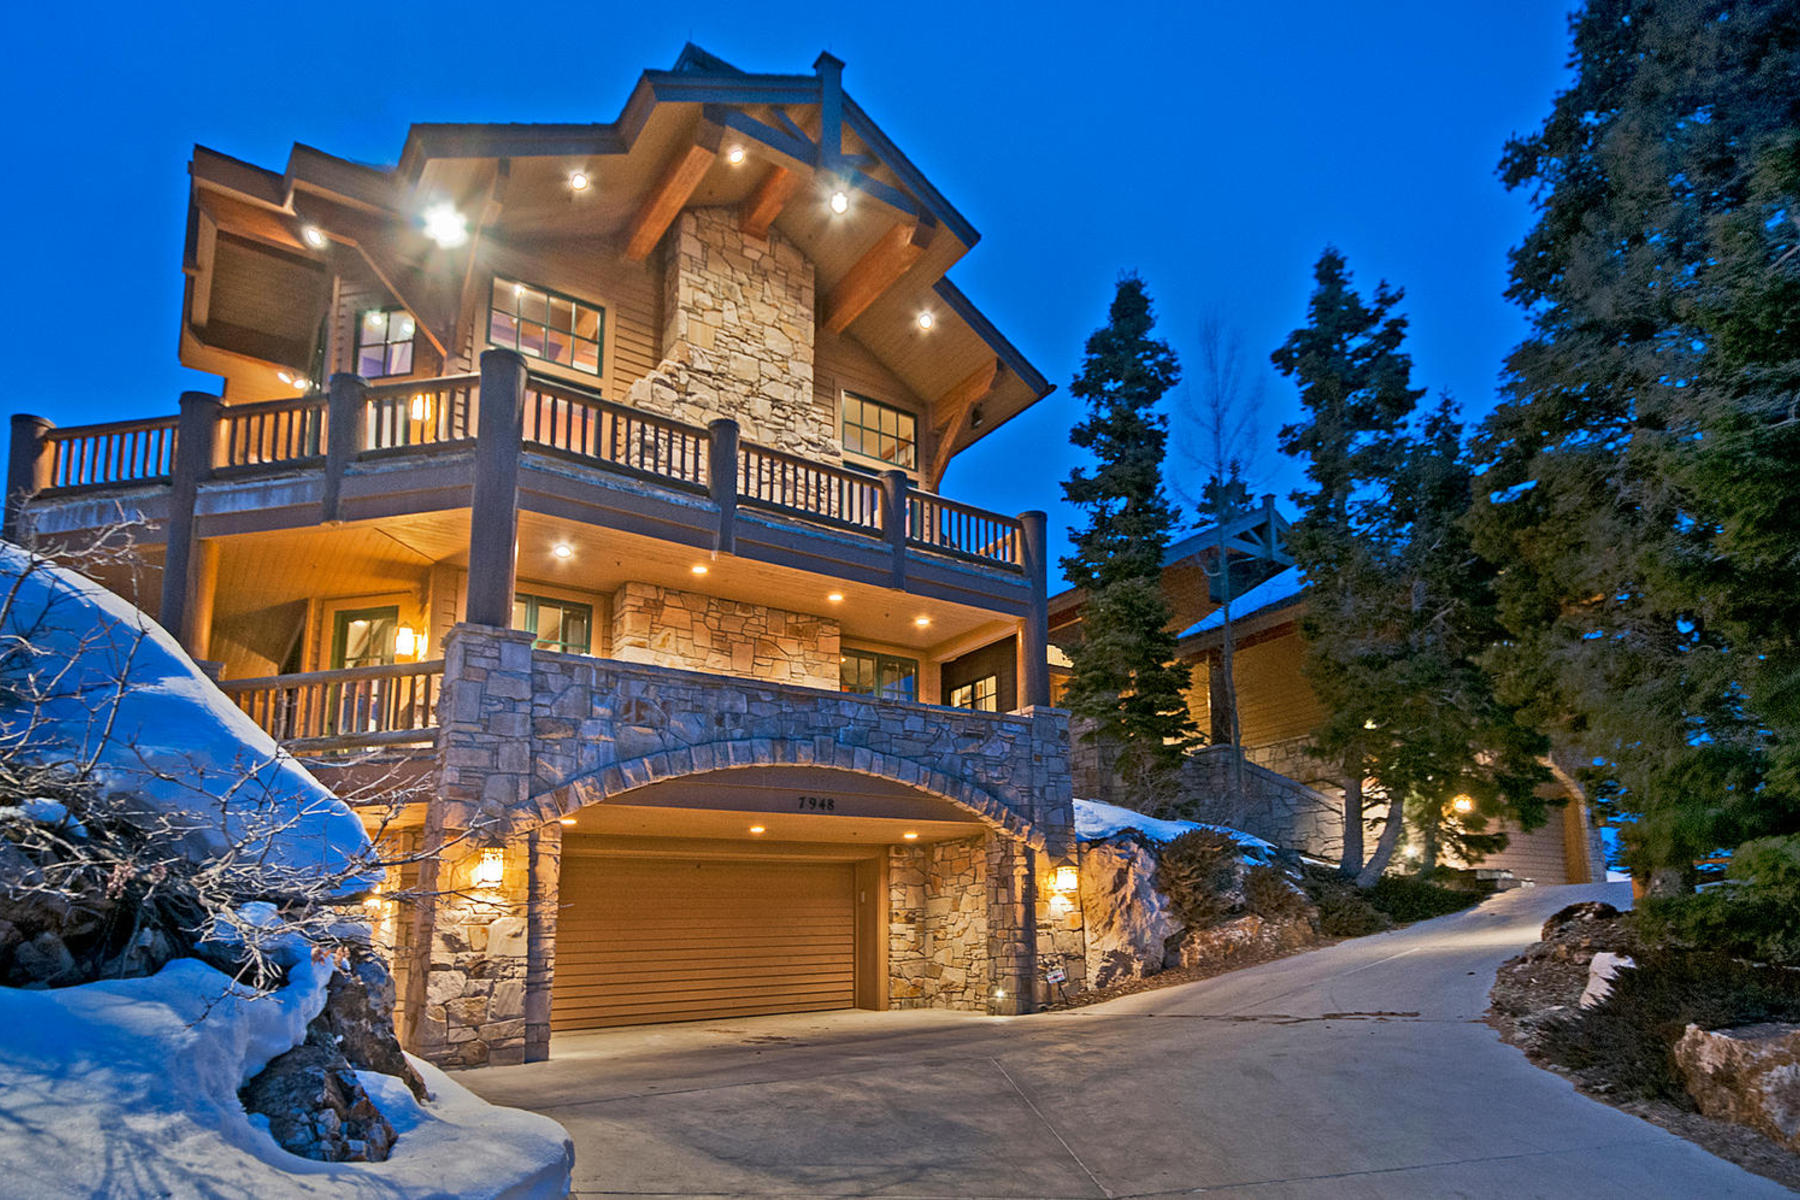 Maison unifamiliale pour l Vente à Timeless Deer Valley Ski-In Ski-out Mountain Retreat 7948 Red Tail Ct Park City, Utah 84060 États-Unis